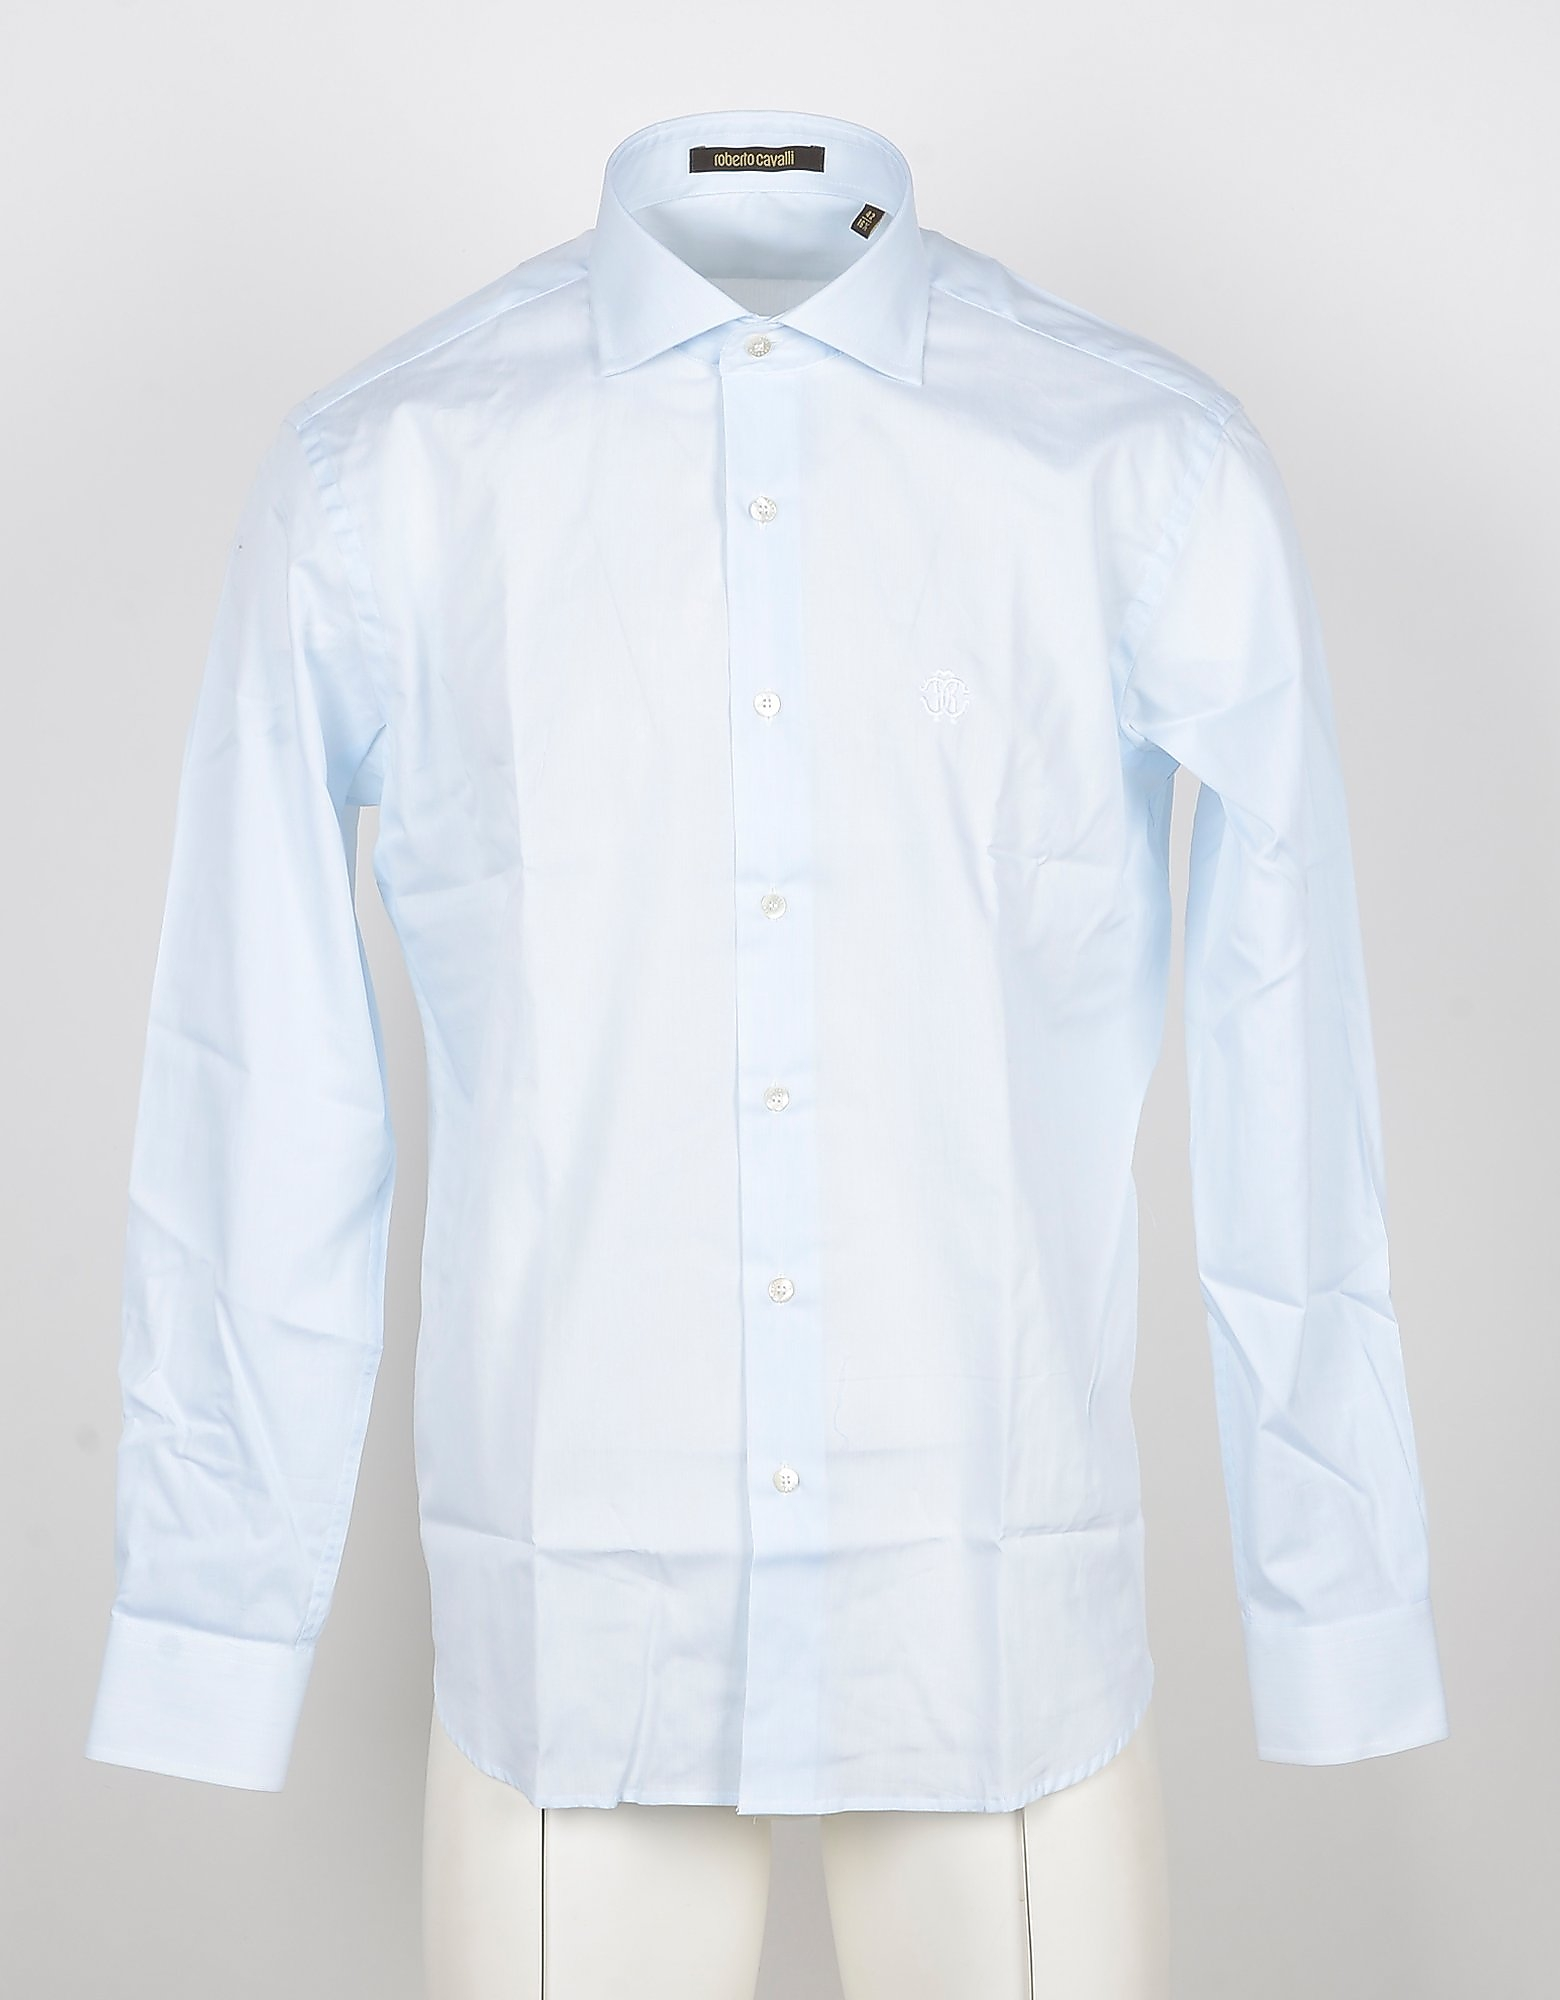 Roberto Cavalli Designer Shirts, Pale Blue Men's Shirts